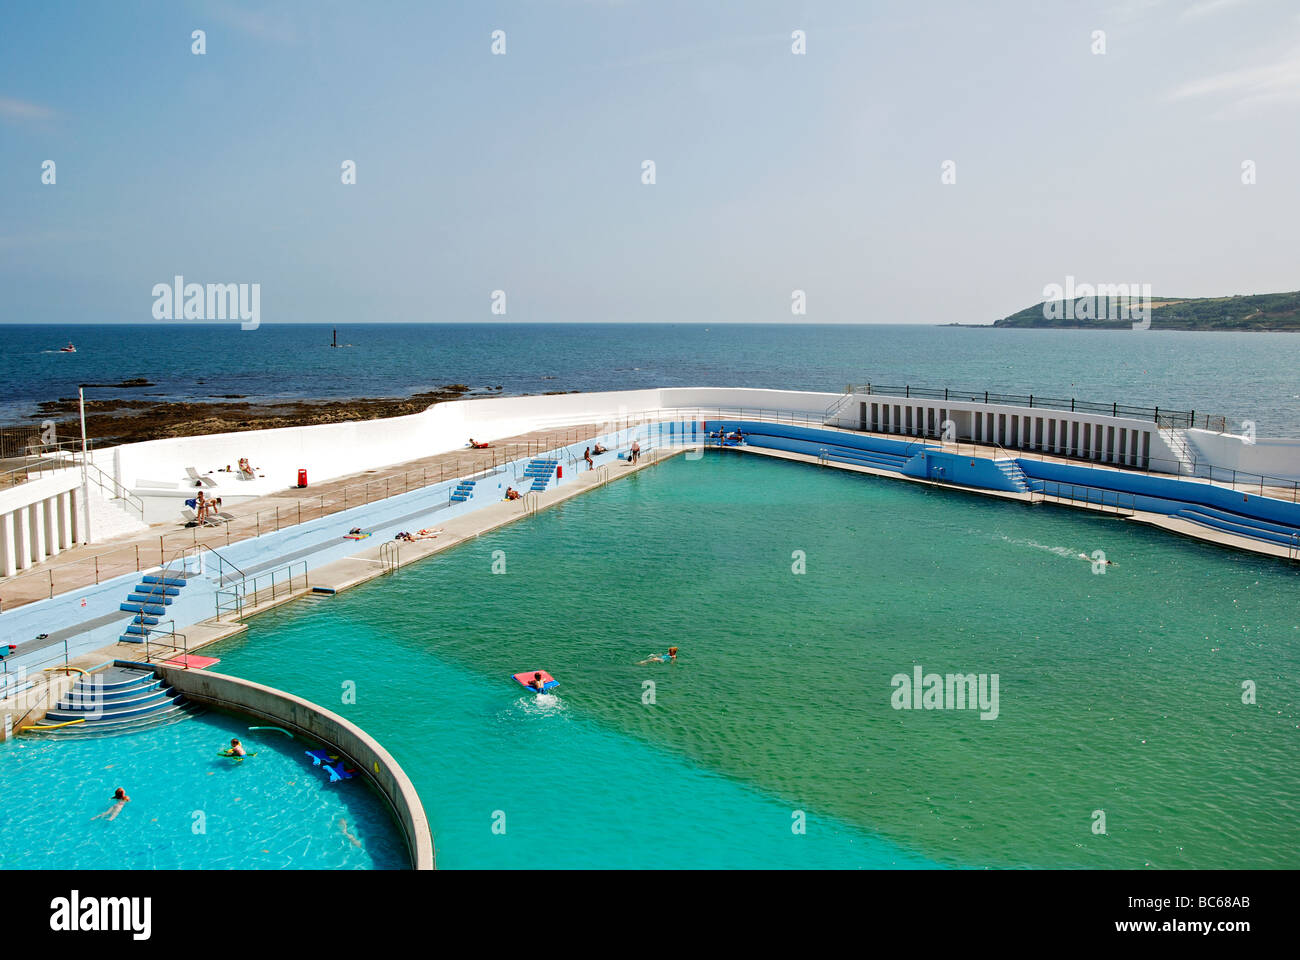 The Open Air Jubilee Swimming Pool On The Seafront At Penzance In Stock Photo Royalty Free